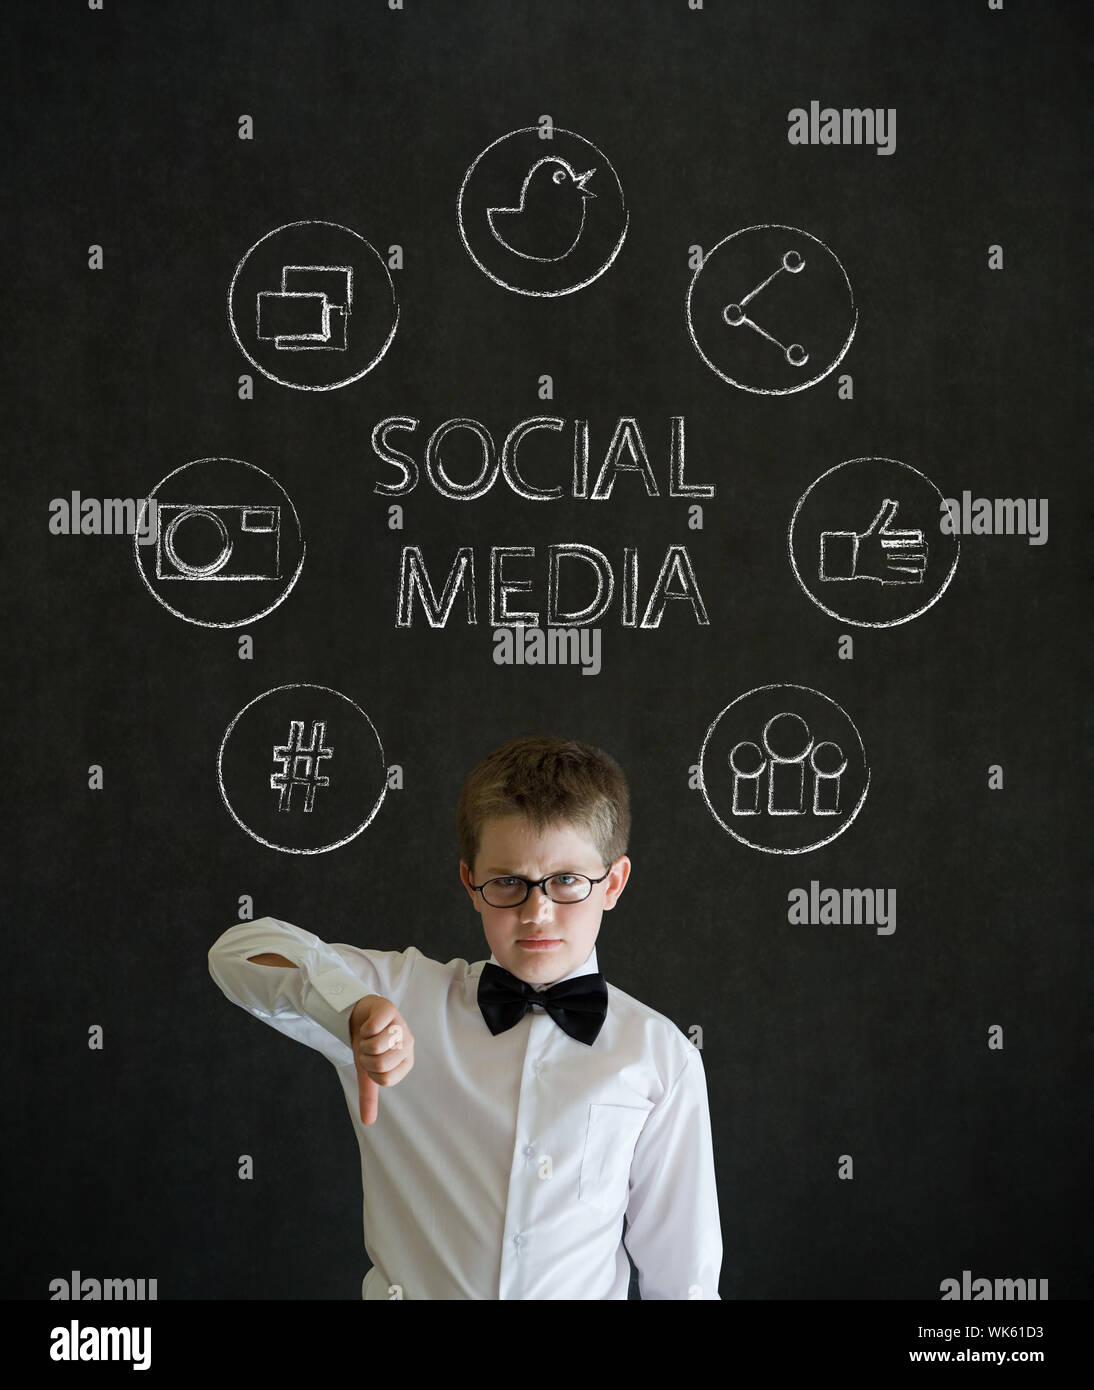 Thumbs down boy dressed up as business man with social media icons on blackboard background Stock Photo